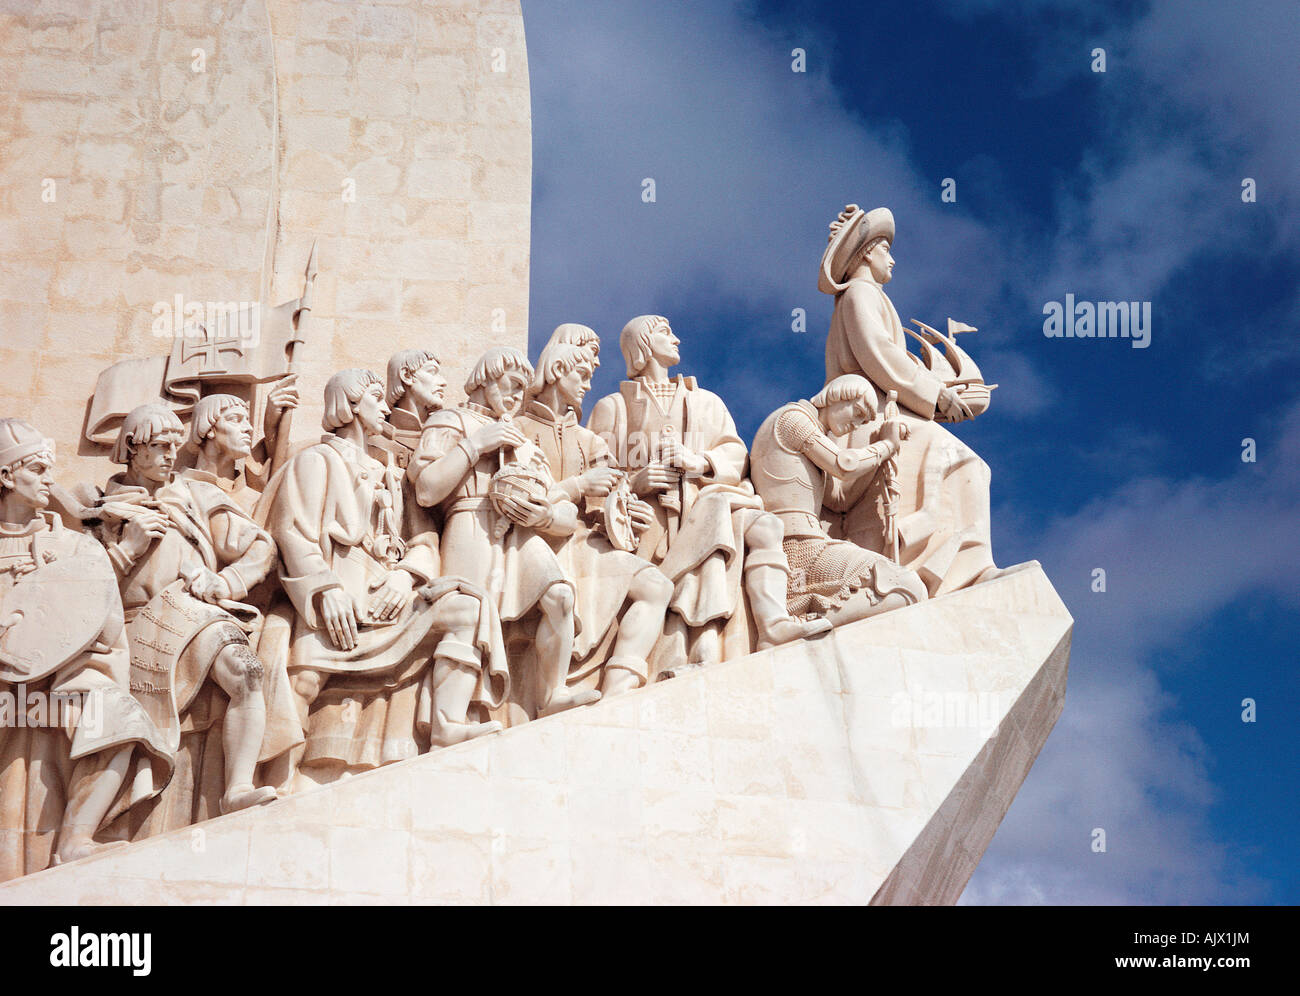 Portugal, Lisbon, Monument to the Discoveries. Stock Photo